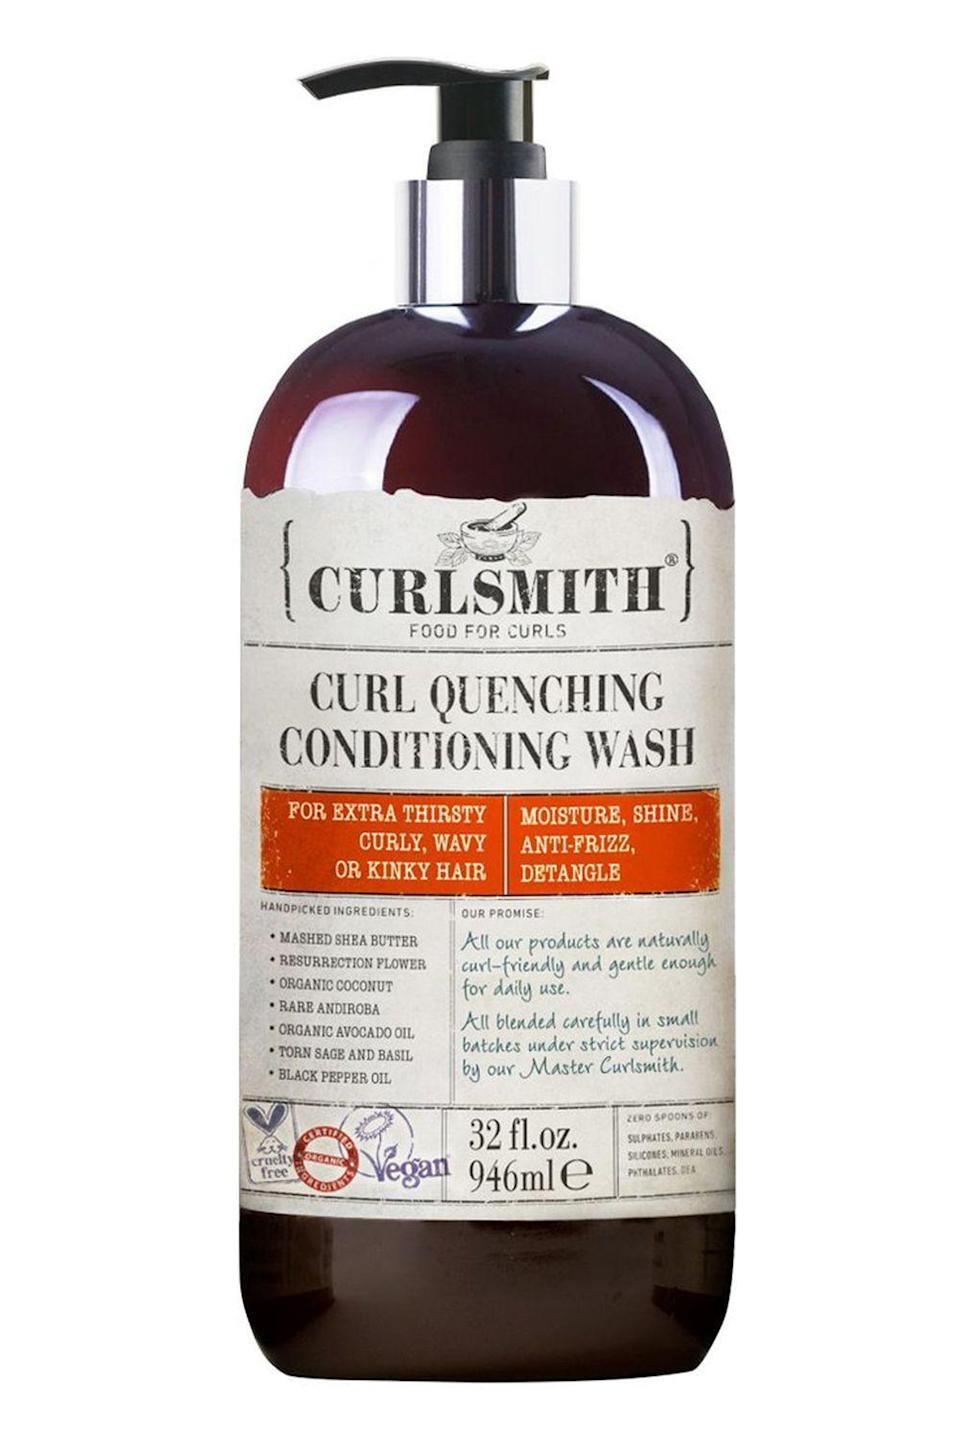 """<p><strong>Curlsmith</strong></p><p>ulta.com</p><p><strong>$56.00</strong></p><p><a href=""""https://go.redirectingat.com?id=74968X1596630&url=https%3A%2F%2Fwww.ulta.com%2Fcurl-quenching-conditioning-wash%3FproductId%3DxlsImpprod17391105&sref=https%3A%2F%2Fwww.cosmopolitan.com%2Fstyle-beauty%2Fbeauty%2Fg33473200%2Fbest-organic-hair-products%2F"""" rel=""""nofollow noopener"""" target=""""_blank"""" data-ylk=""""slk:Shop Now"""" class=""""link rapid-noclick-resp"""">Shop Now</a></p><p>This organic <a href=""""https://www.cosmopolitan.com/style-beauty/beauty/news/a56230/co-washing-benefits/"""" rel=""""nofollow noopener"""" target=""""_blank"""" data-ylk=""""slk:co-wash"""" class=""""link rapid-noclick-resp"""">co-wash</a> is ideal for super-dry waves, curls, and coils. <strong>It doesn't lather at all (but DW, it still gently cleanses your hair and dissolves build-up)</strong> and contains a moisturizing cocktail of organic avocado oil, coconut oil, and shea butter to add softness and smoothness. </p>"""